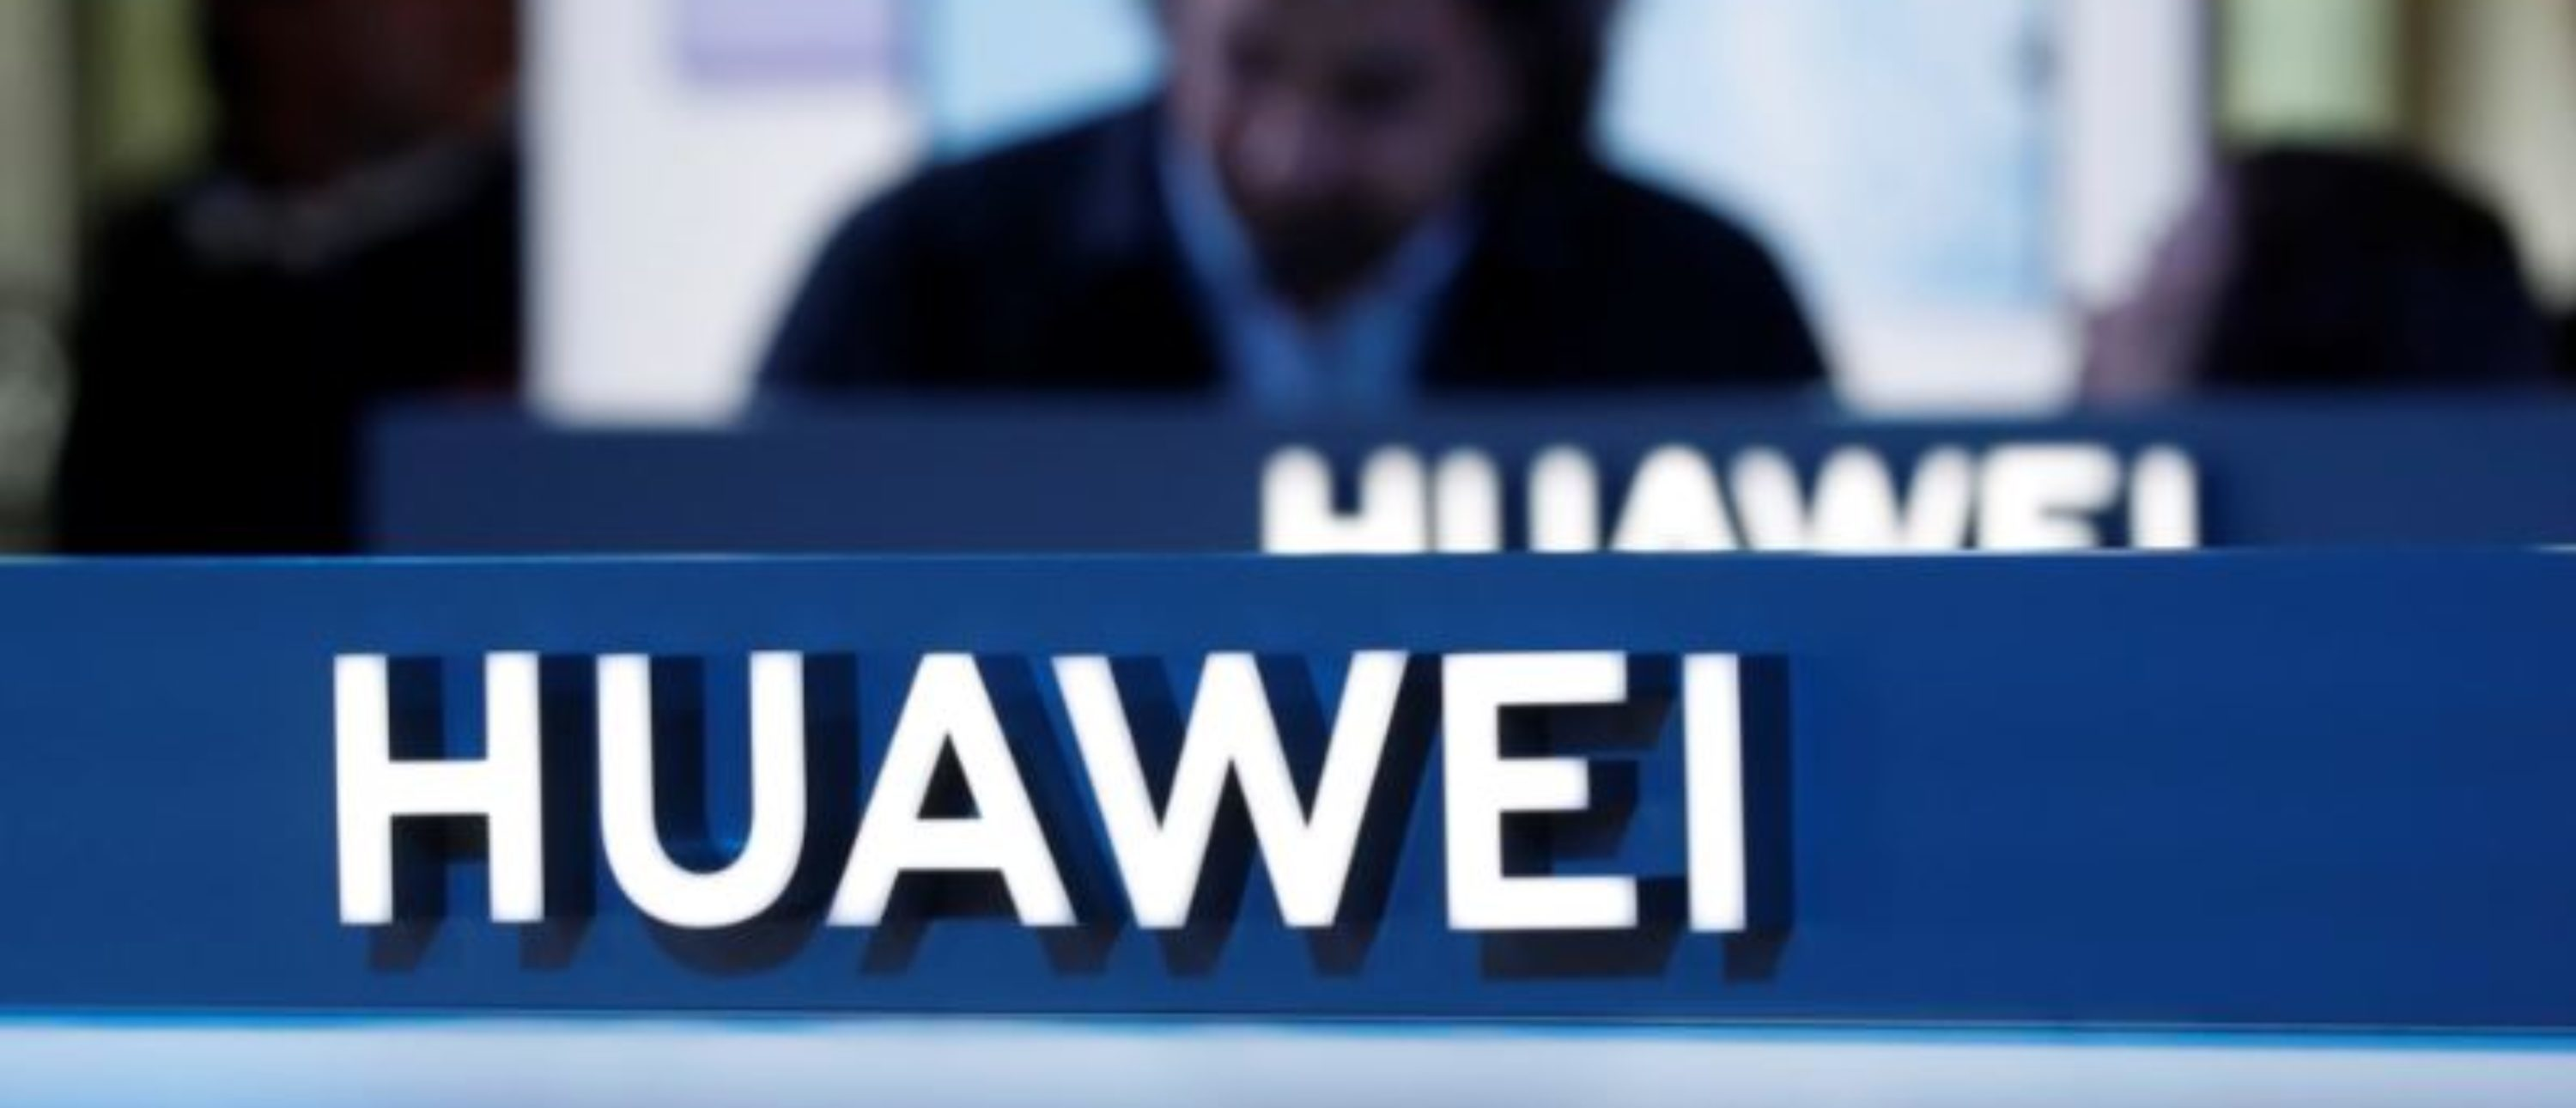 The Huawei logo is pictured on the company's stand during the 'Electronics Show - International Trade Fair for Consumer Electronics' at Ptak Warsaw Expo in Nadarzyn, Poland, May 10, 2019. Picture taken May 10, 2019. To match Special Report HUAWEI-POLAND/SPYING REUTERS/Kacper Pempel